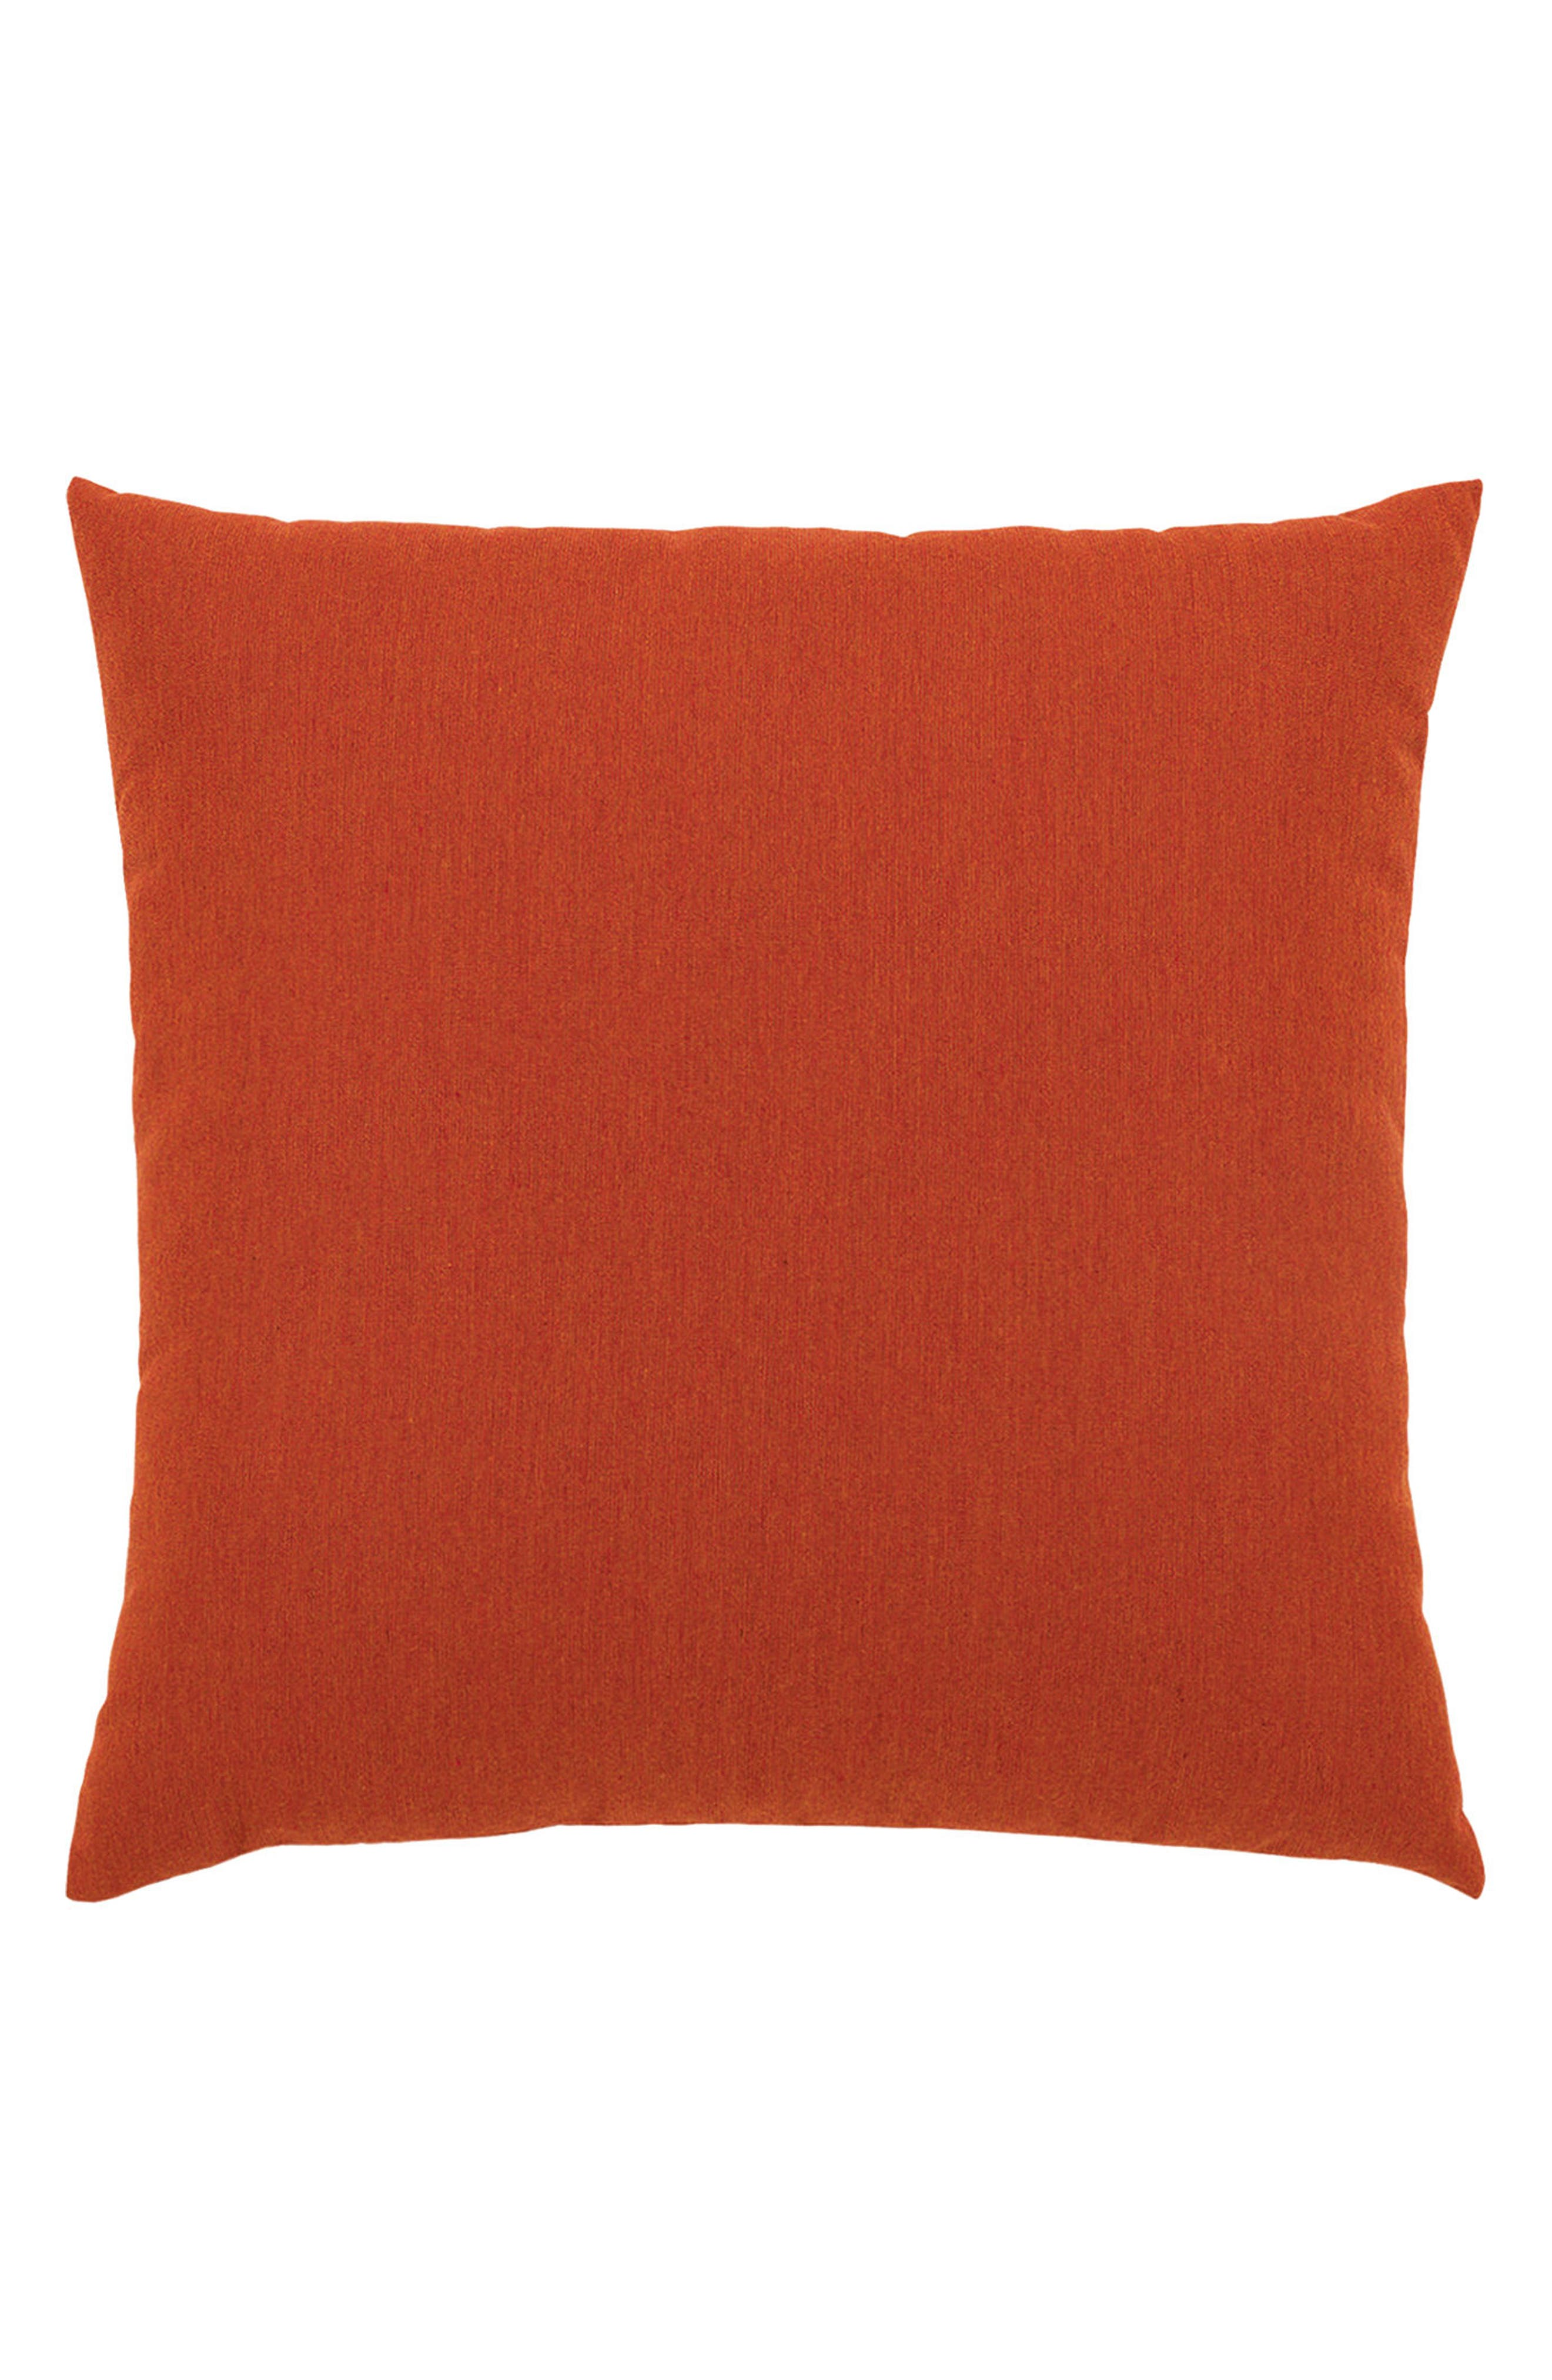 Coral Cruise Indoor/Outdoor Accent Pillow,                             Alternate thumbnail 2, color,                             Orange/ Ivory